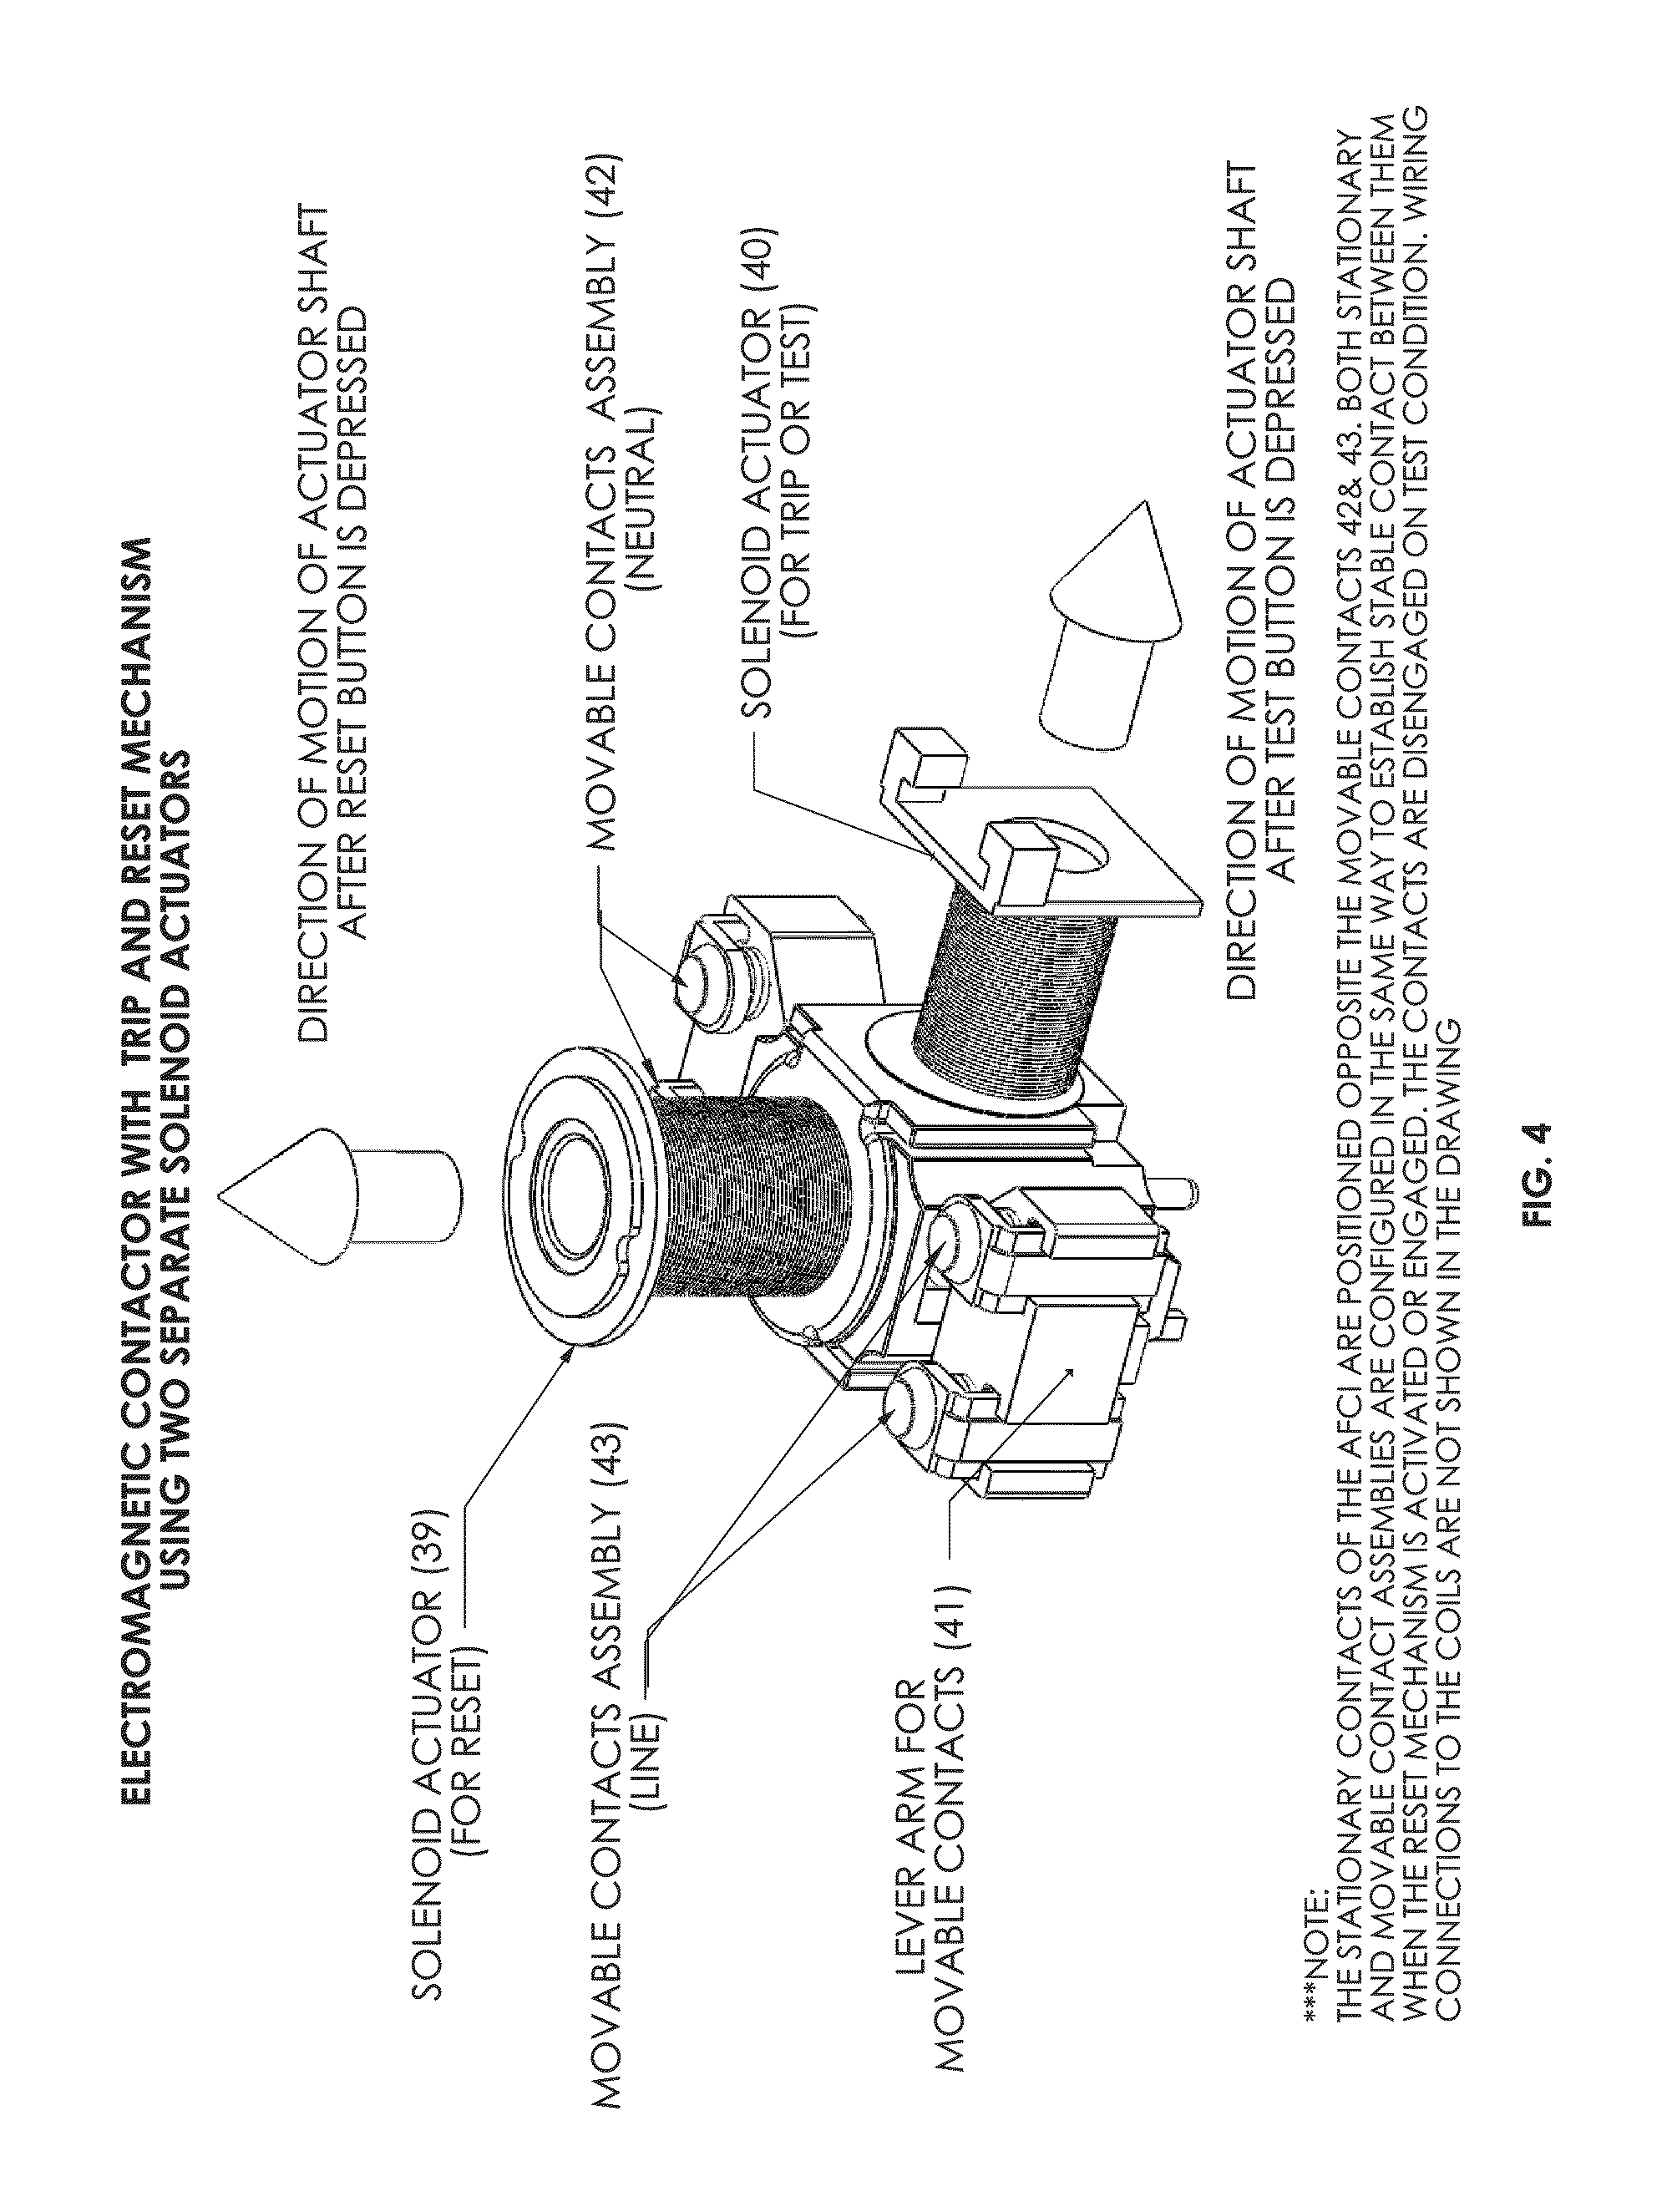 Arc Fault Circuit Interrupter Tripping Guide And Troubleshooting Breakers Patent Us20100097733 Afci Breaker